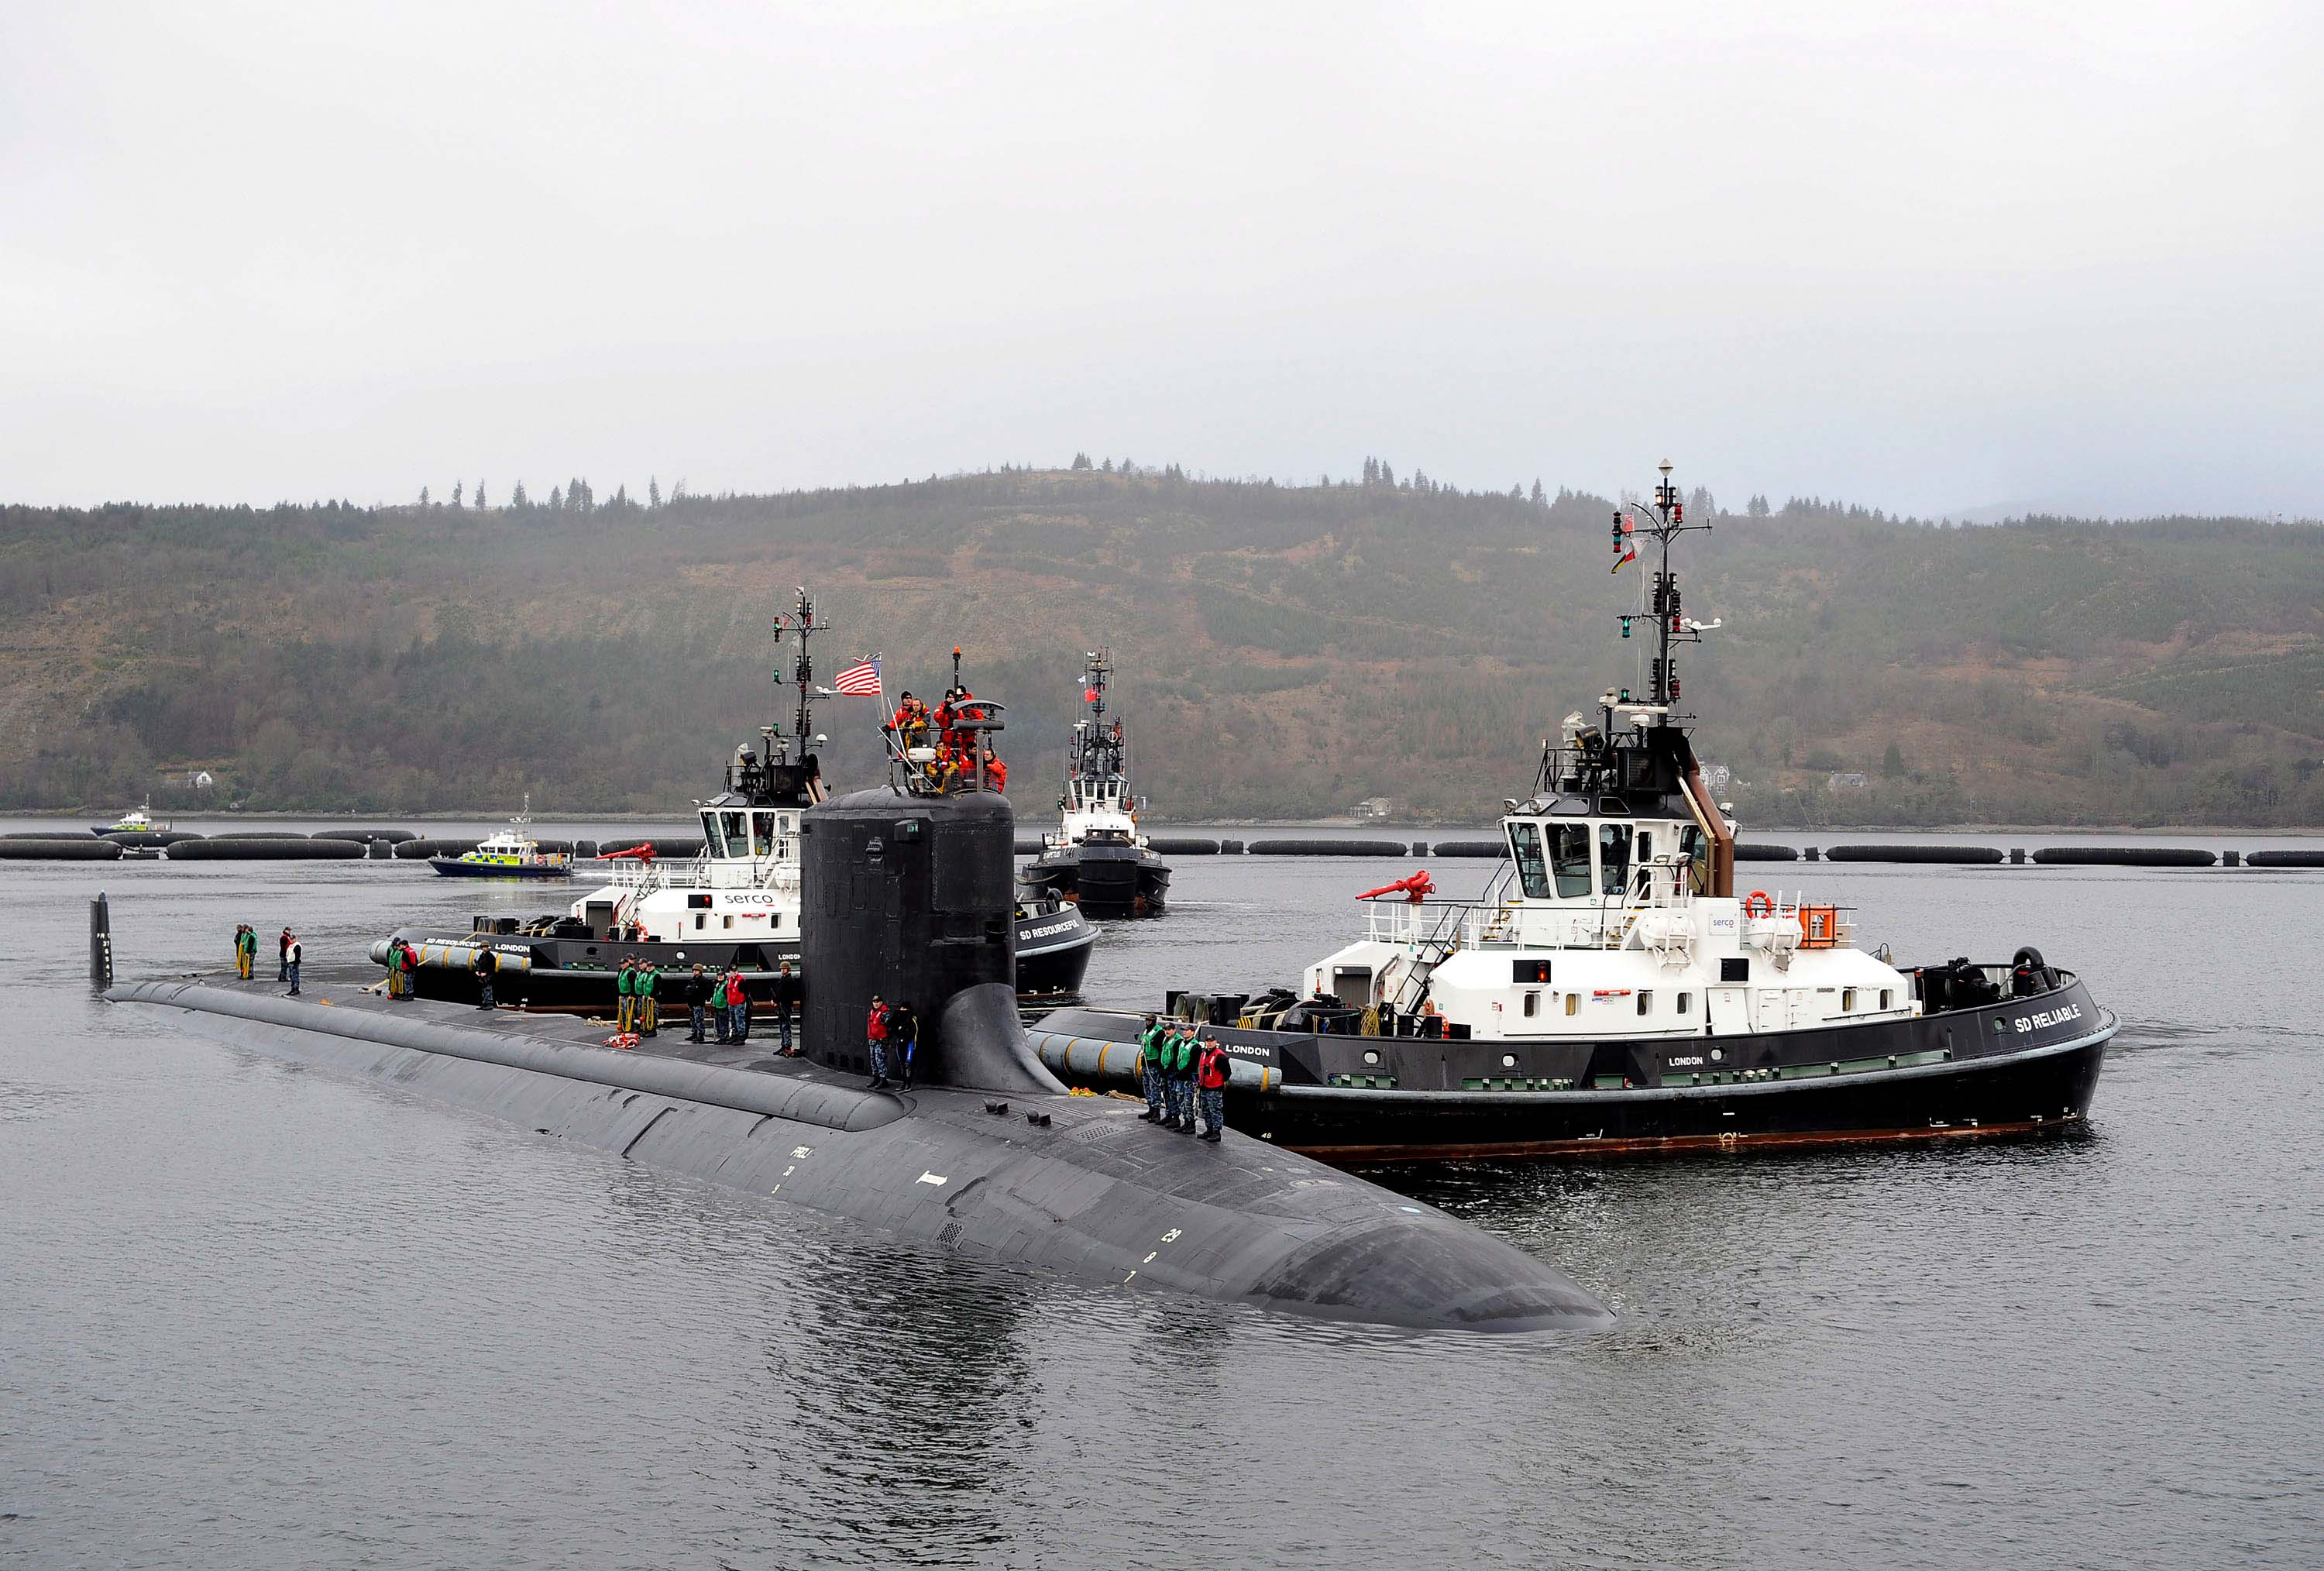 USS VIRGINIA SSN-774 in Faslane, Schottland am 22.03.2016 Bild: U.S. Navy